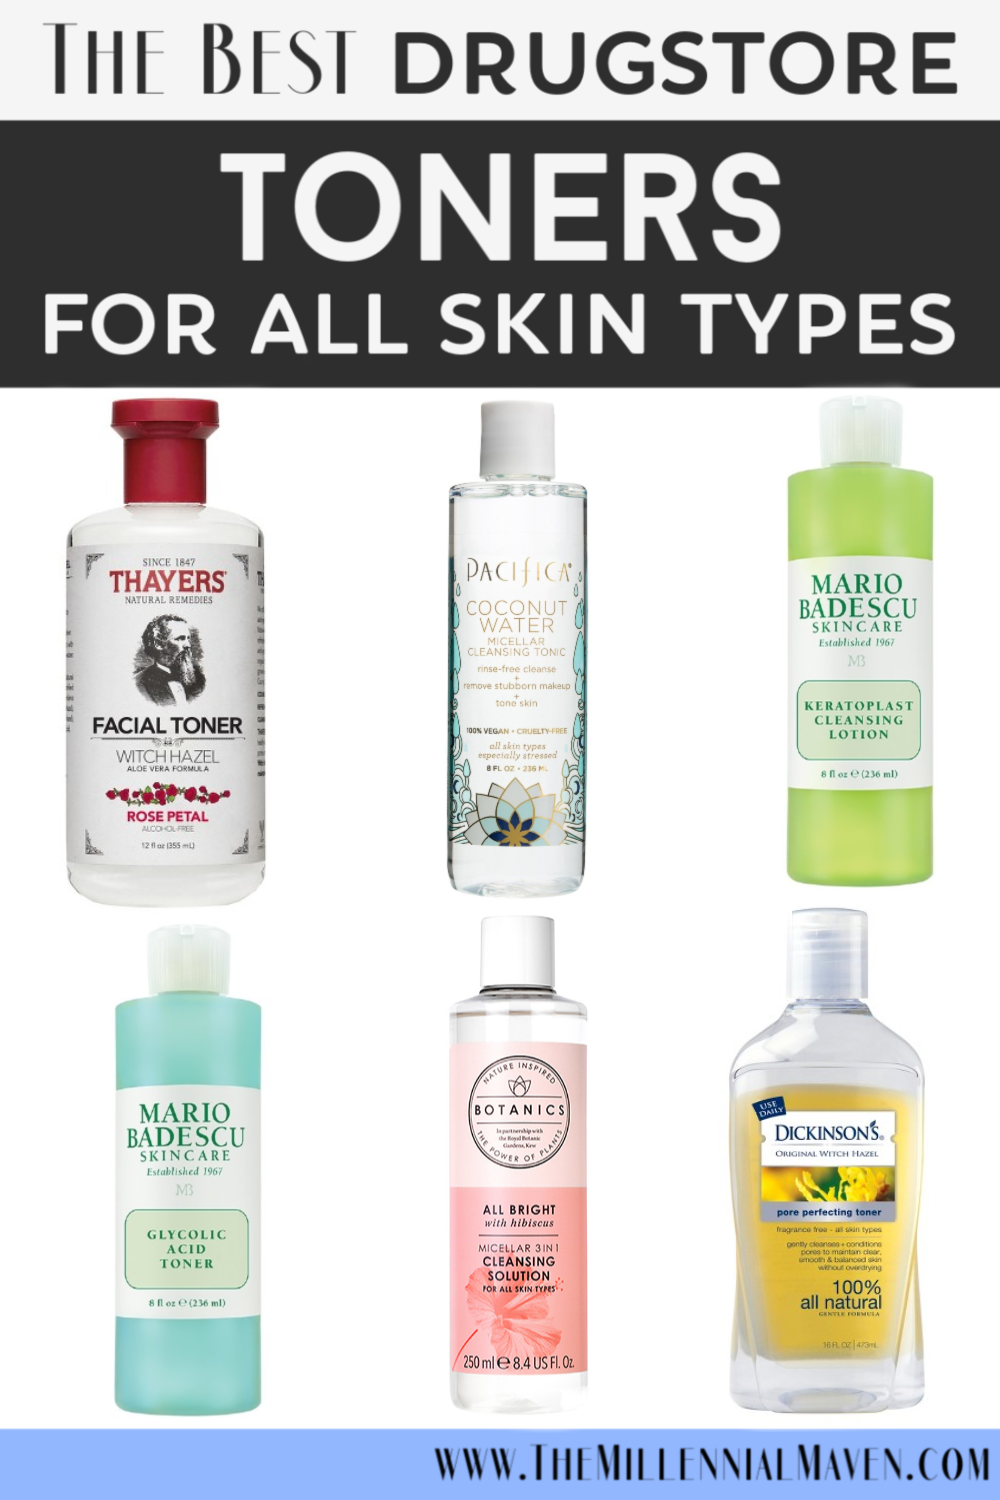 Updated 2019 The Best Drugstore Toners For All Skin Types Affordable Drugstore Skincare The Millennial Maven Best Drugstore Toner Drugstore Skincare Beauty Skin Care